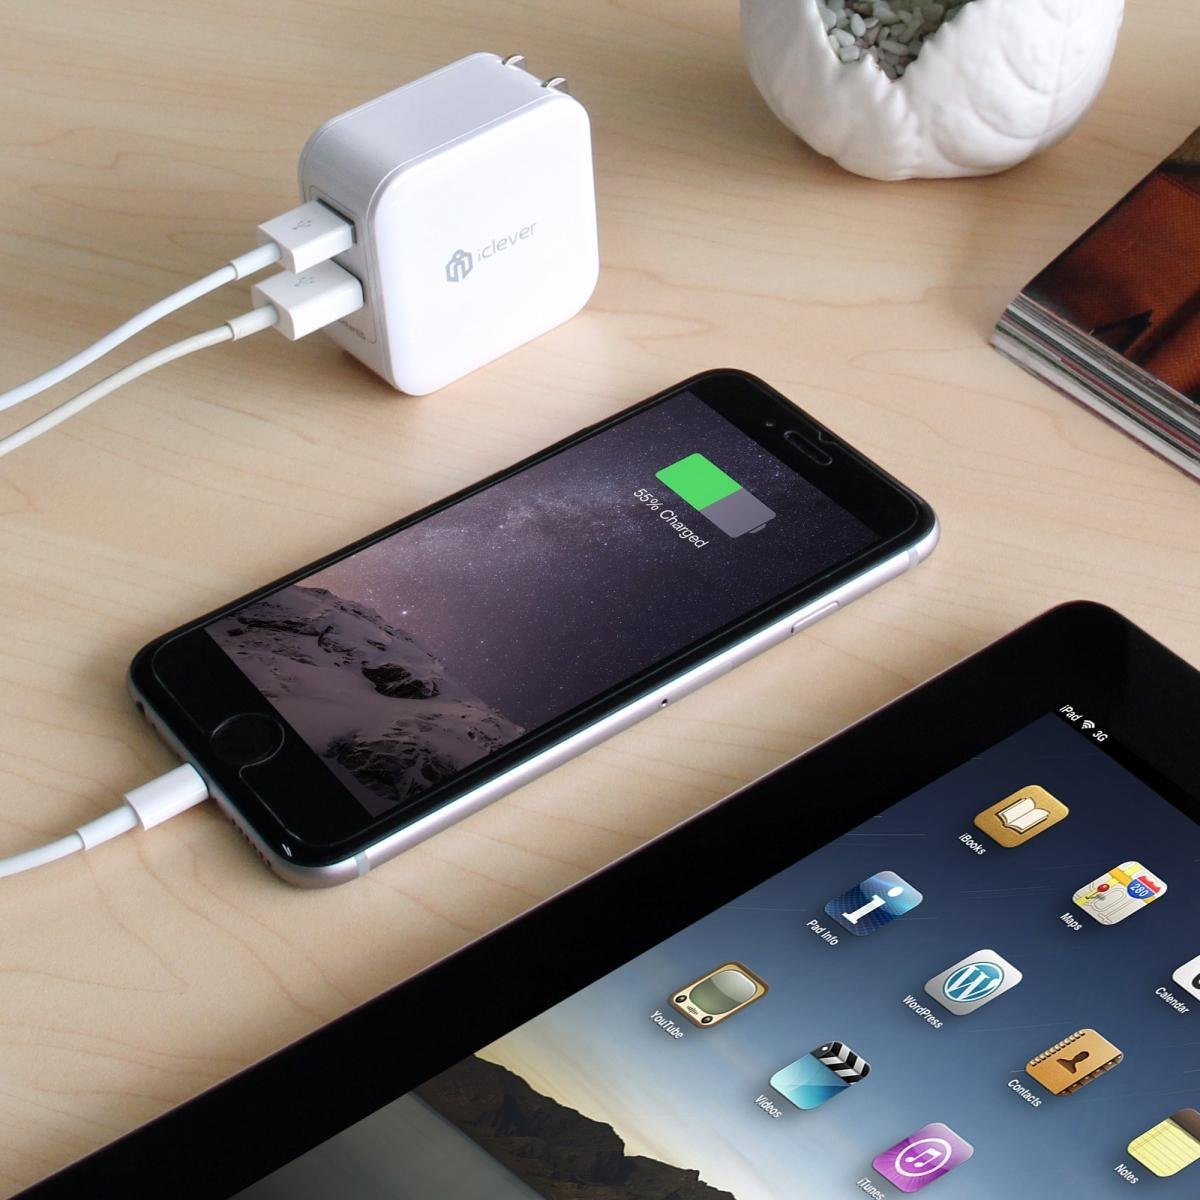 iClever iPhone 6 charger